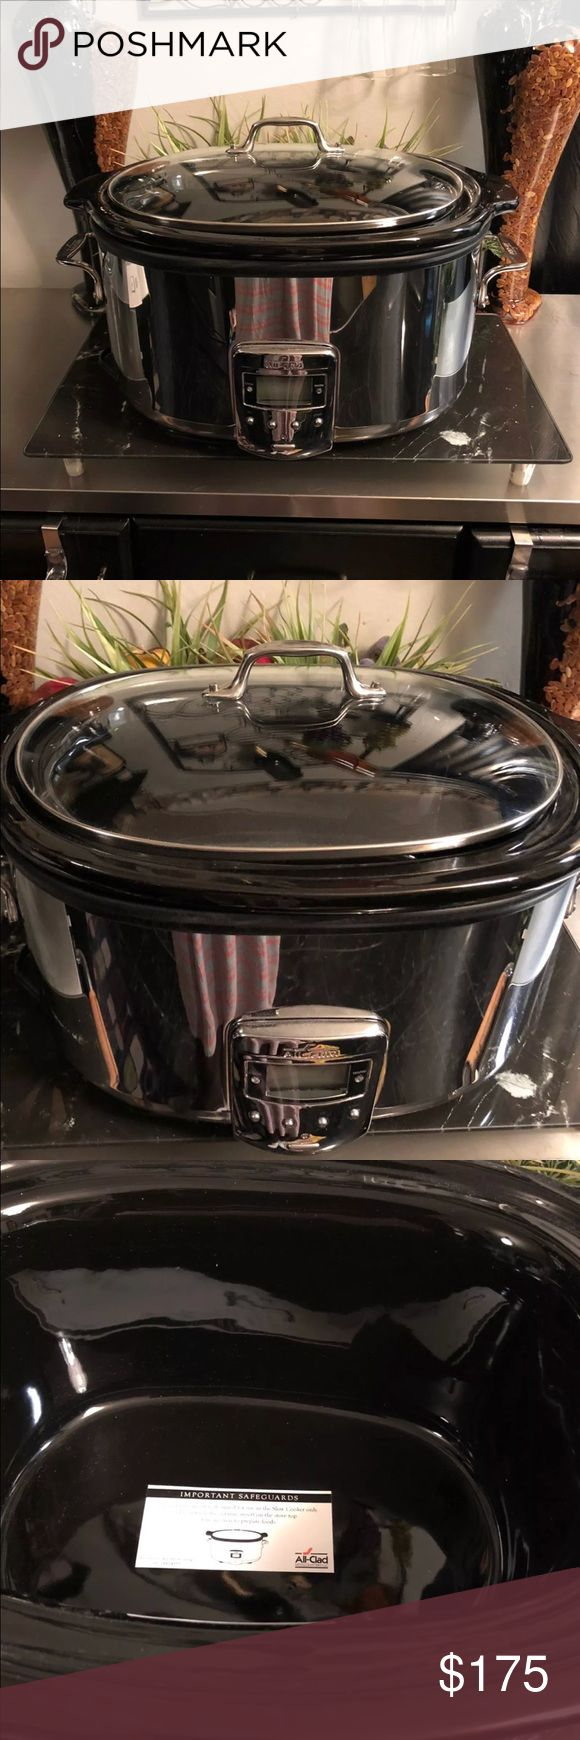 All-Clad Slow Cooker Beautiful chrome digital All-Clad crockpot new never used All-Clad Other